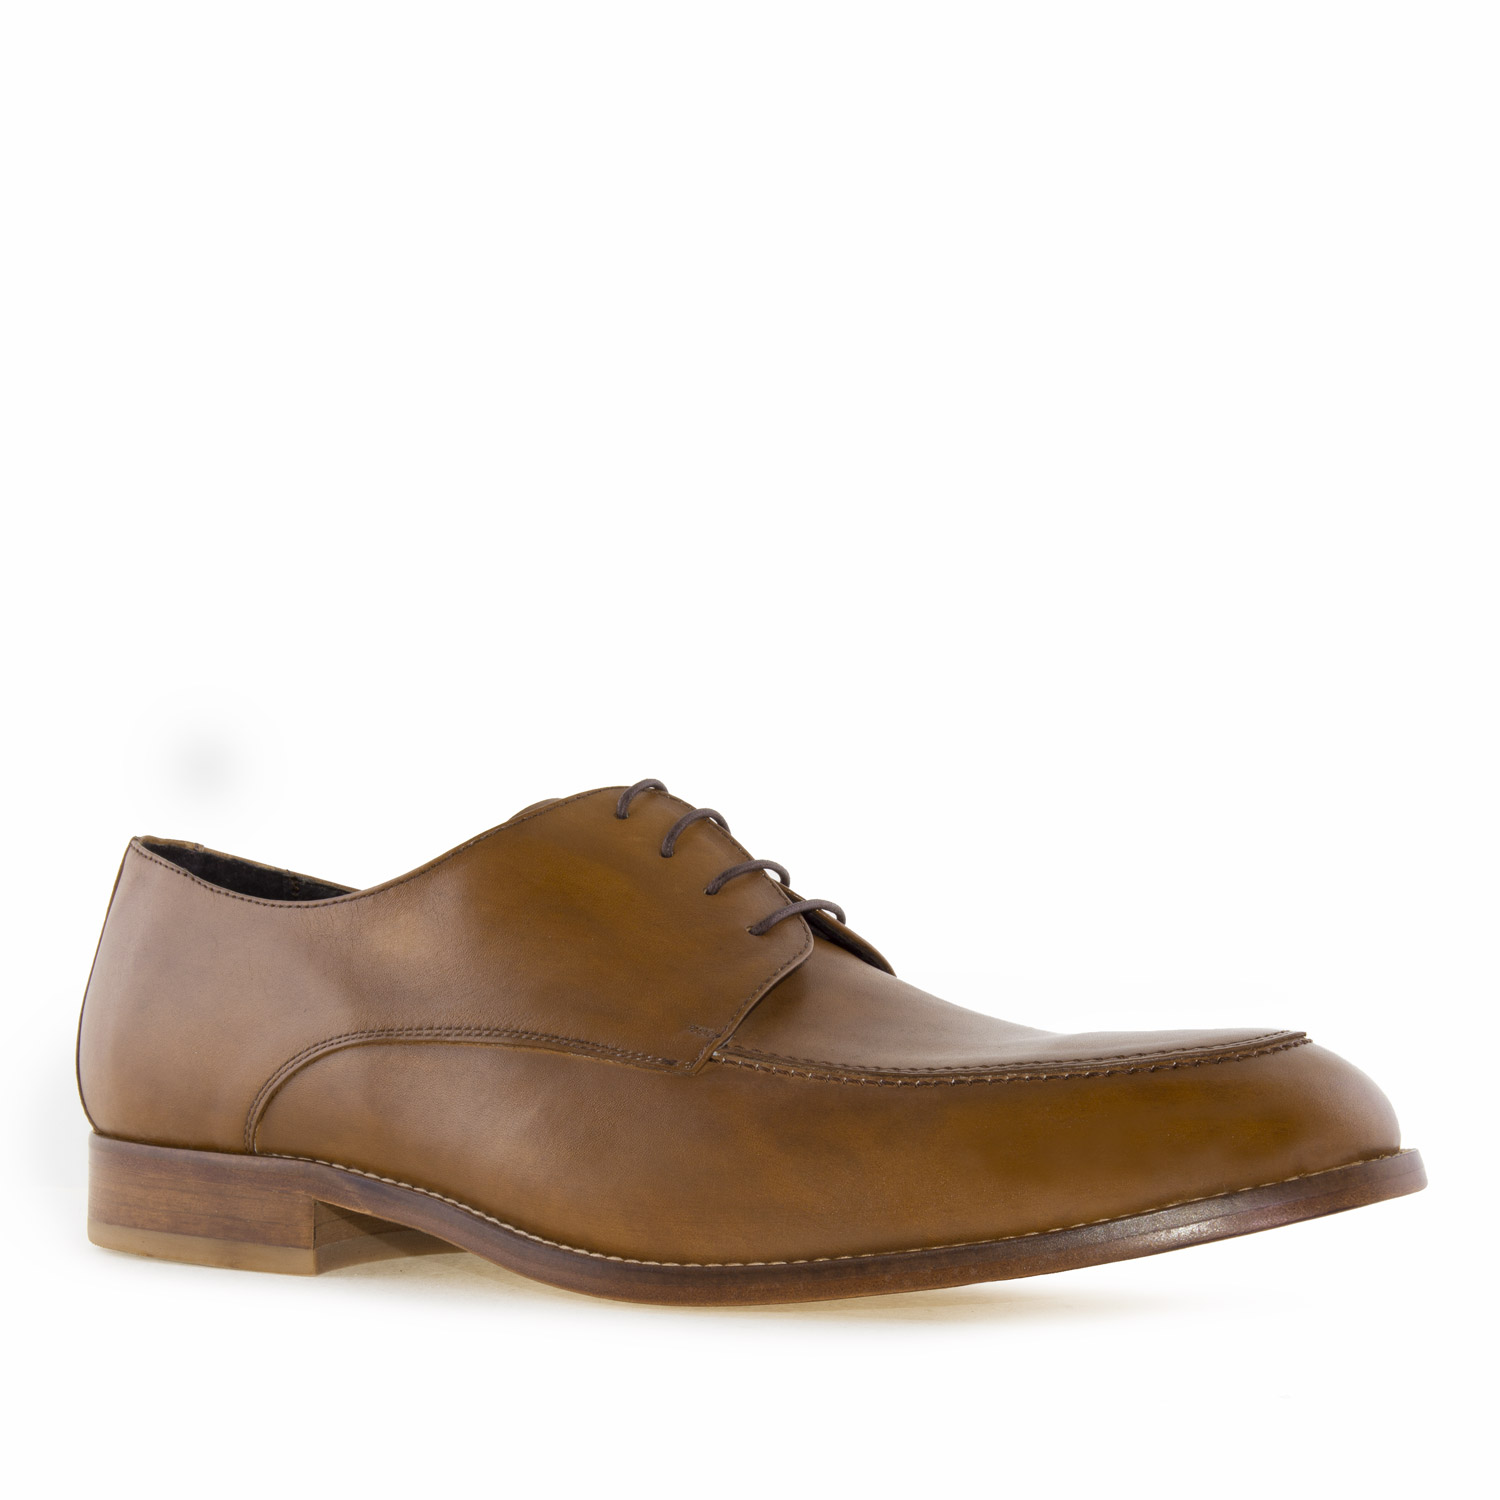 Zapato Oxford Piel Marron